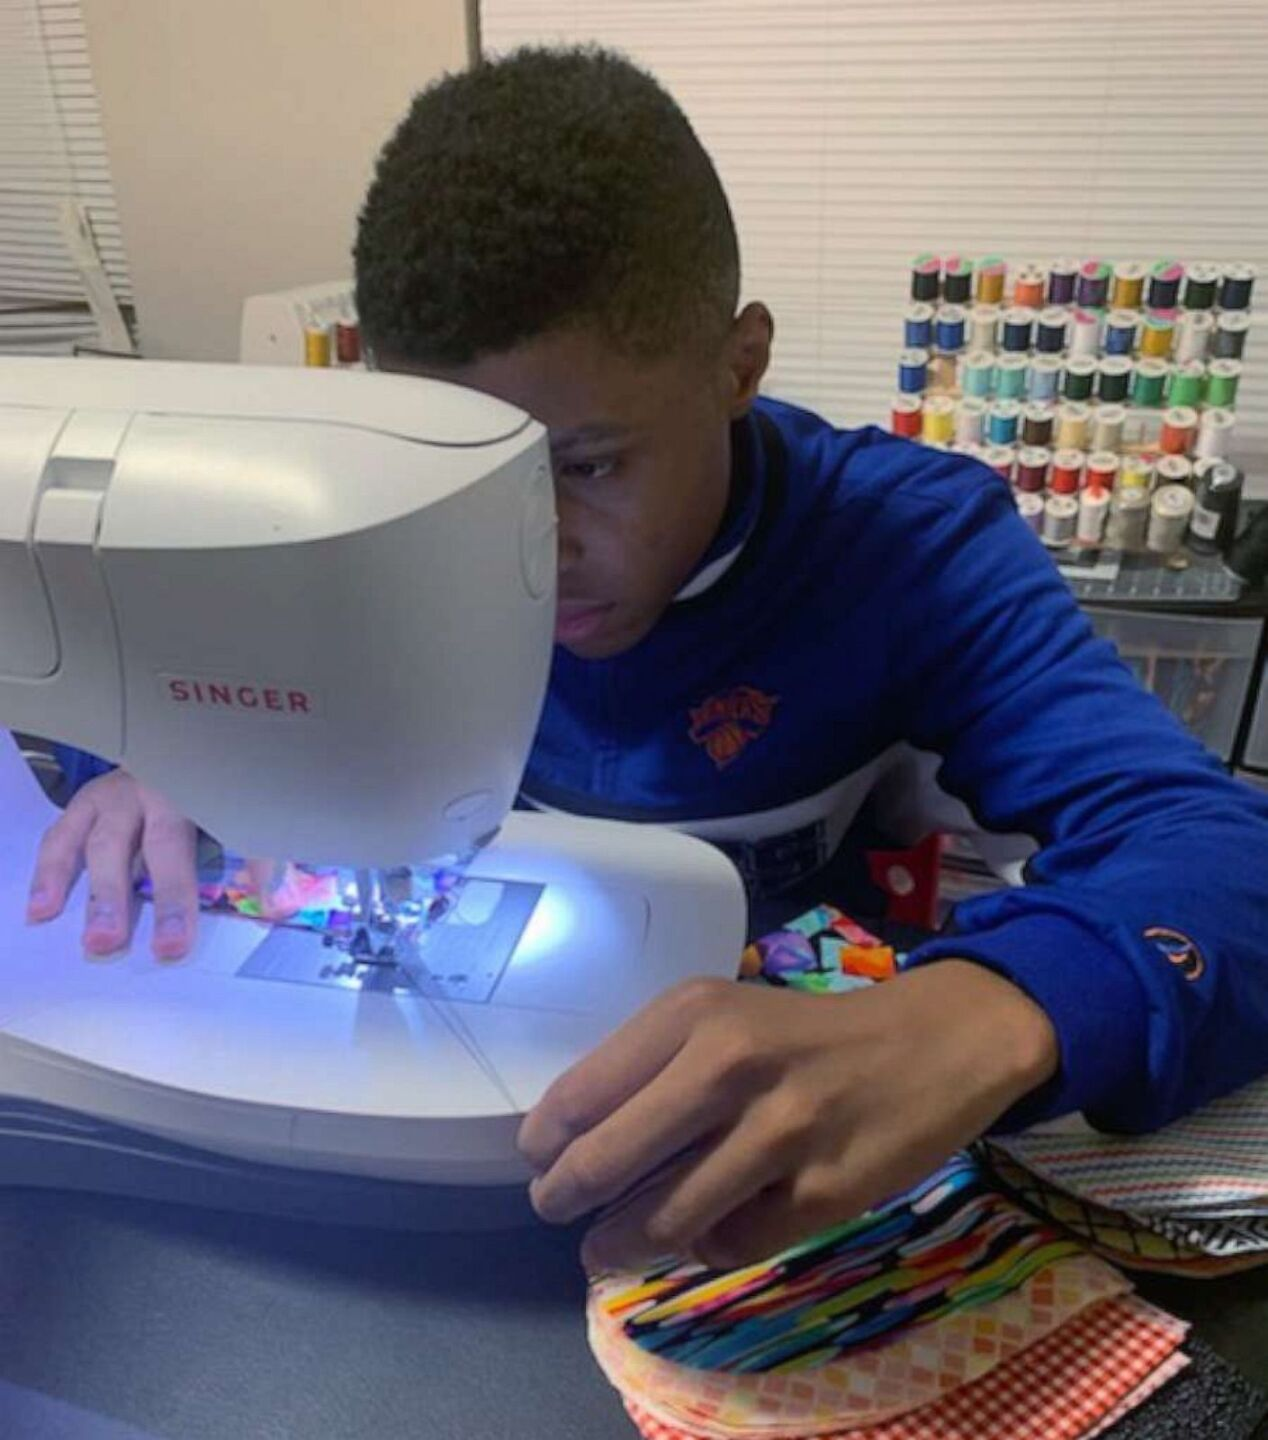 Sir Darius Brown learned to sew because of his older sister Dazhai, who is a hairstylist and used to sew hair bows.